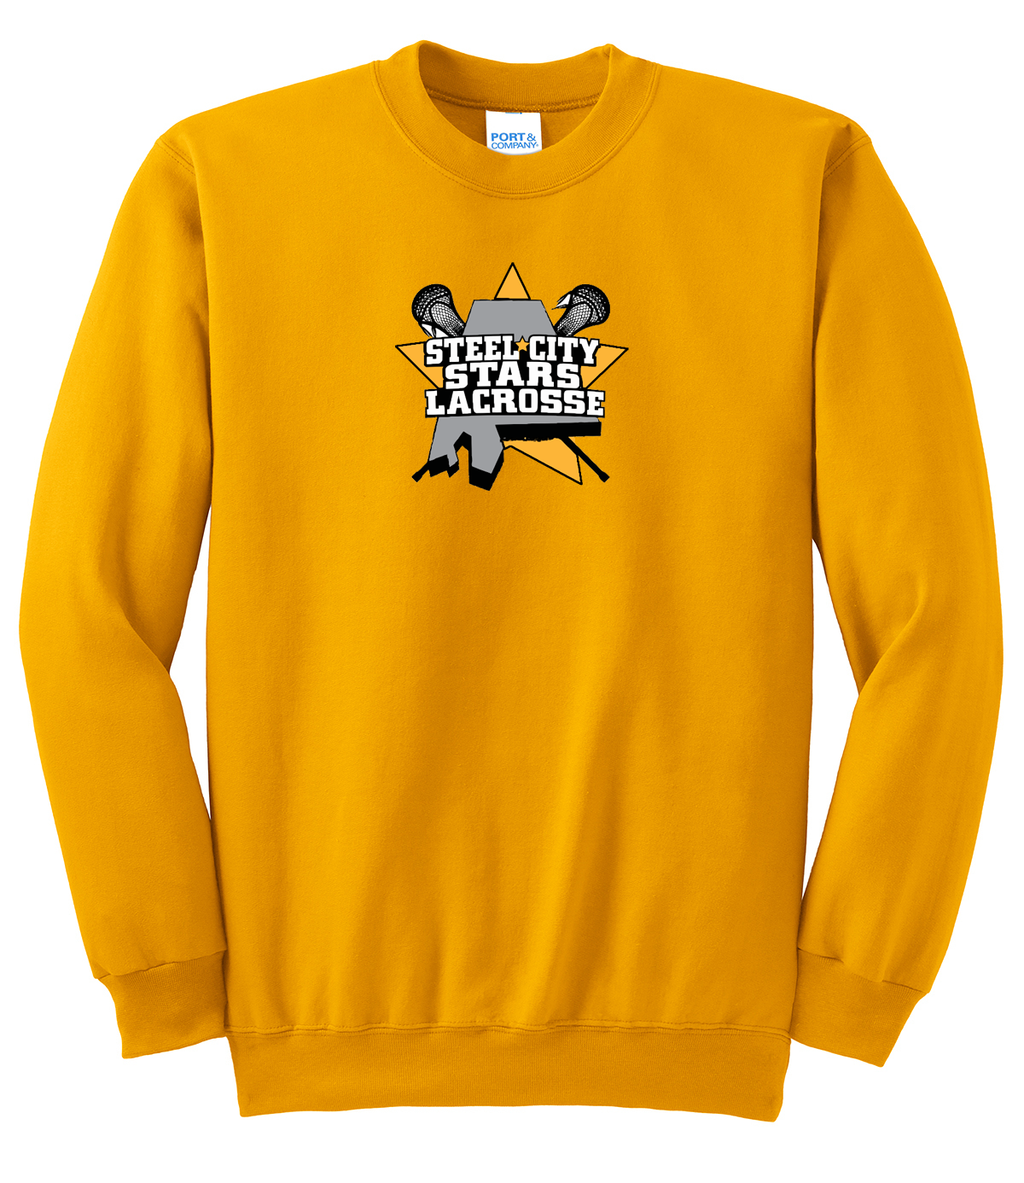 Stars Lacrosse Crew Neck Sweater